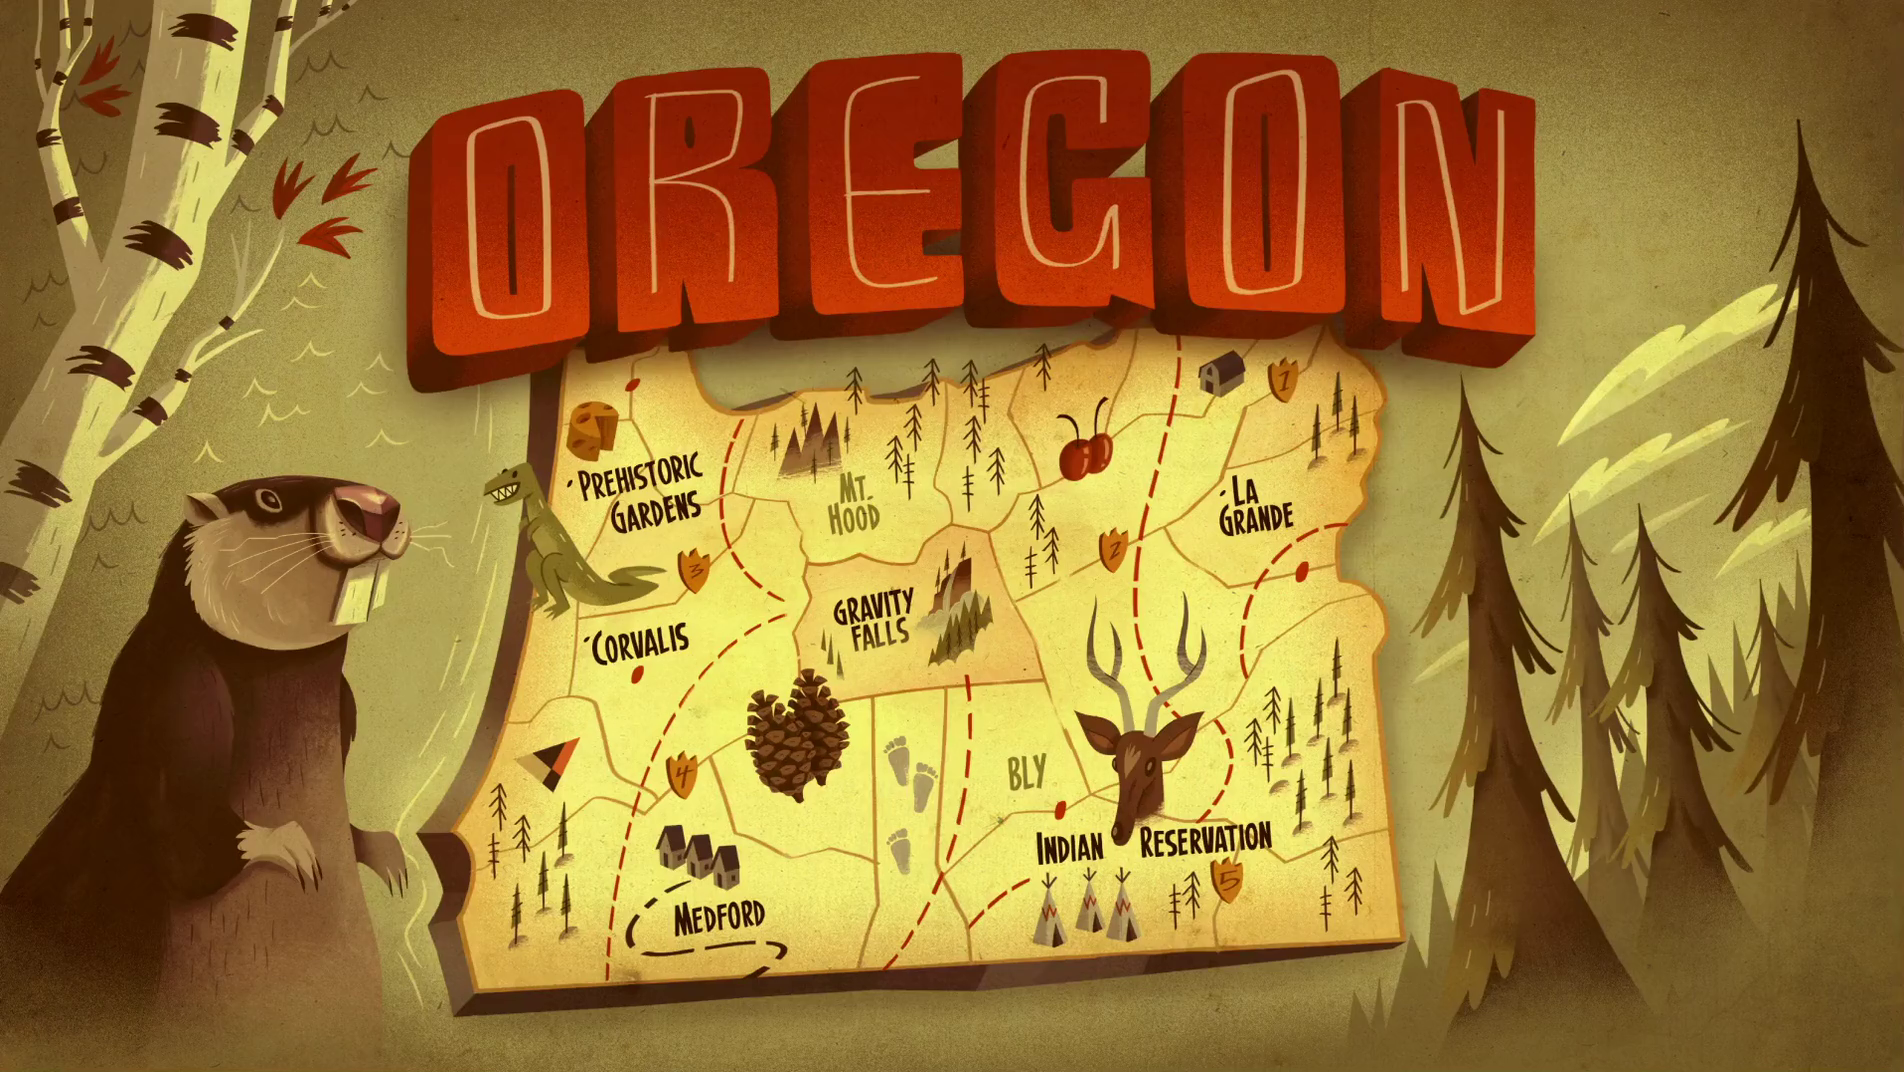 Gravity Falls Oregon Map Gravity Falls, Oregon | Gravity Falls Wiki | FANDOM powered by Wikia Gravity Falls Oregon Map